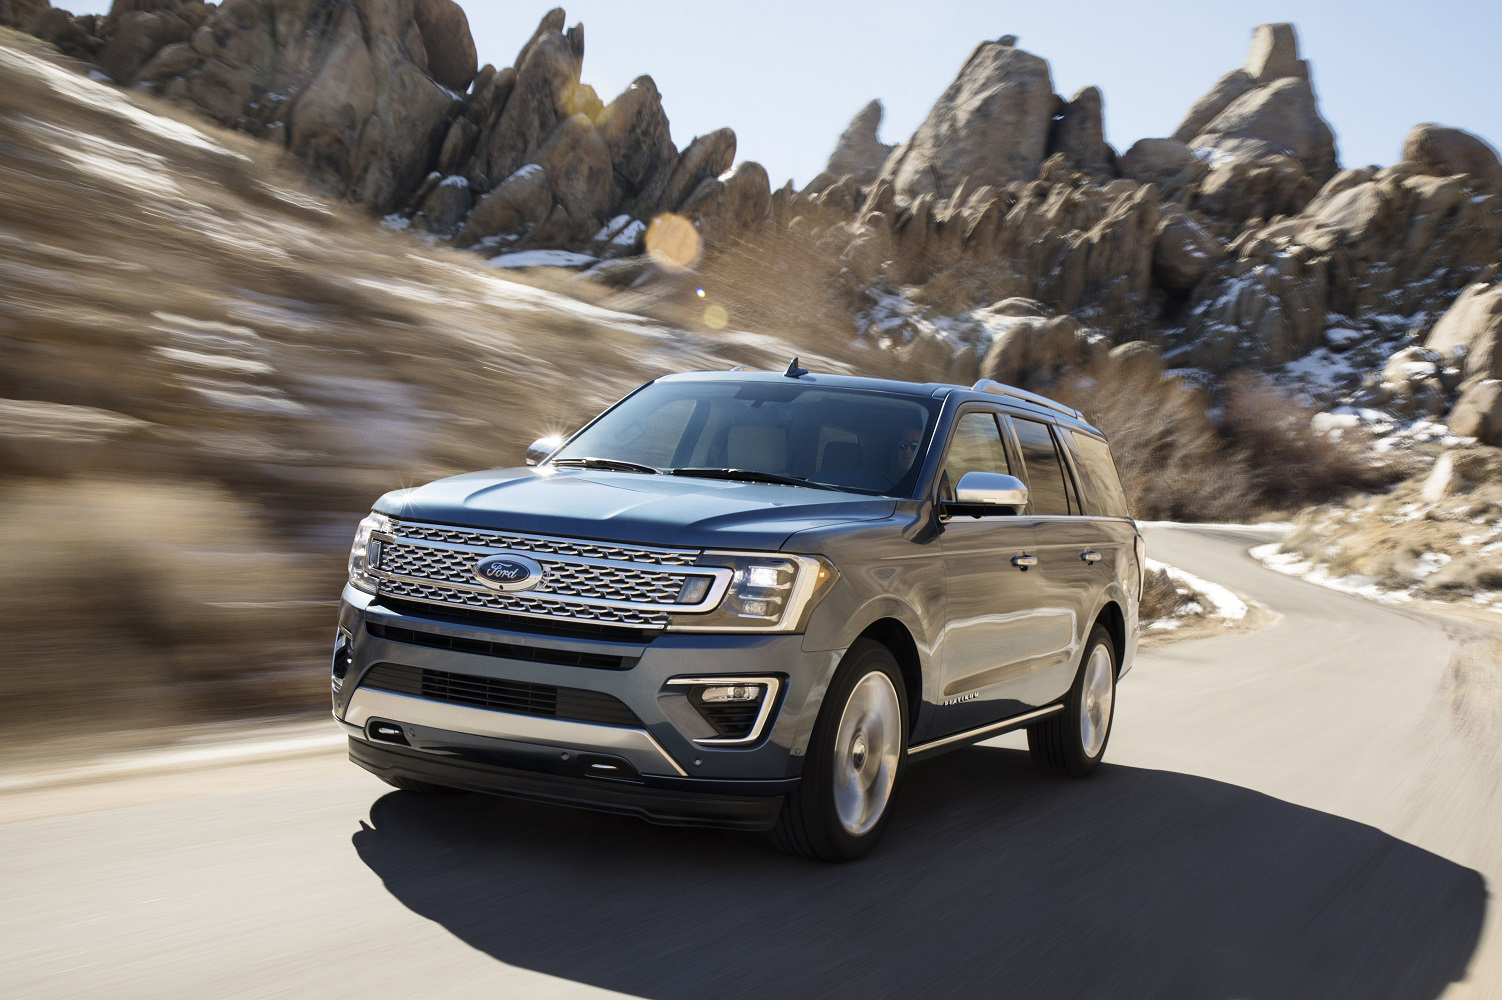 2018 ford expedition news specs performance features pictures digital trends. Black Bedroom Furniture Sets. Home Design Ideas